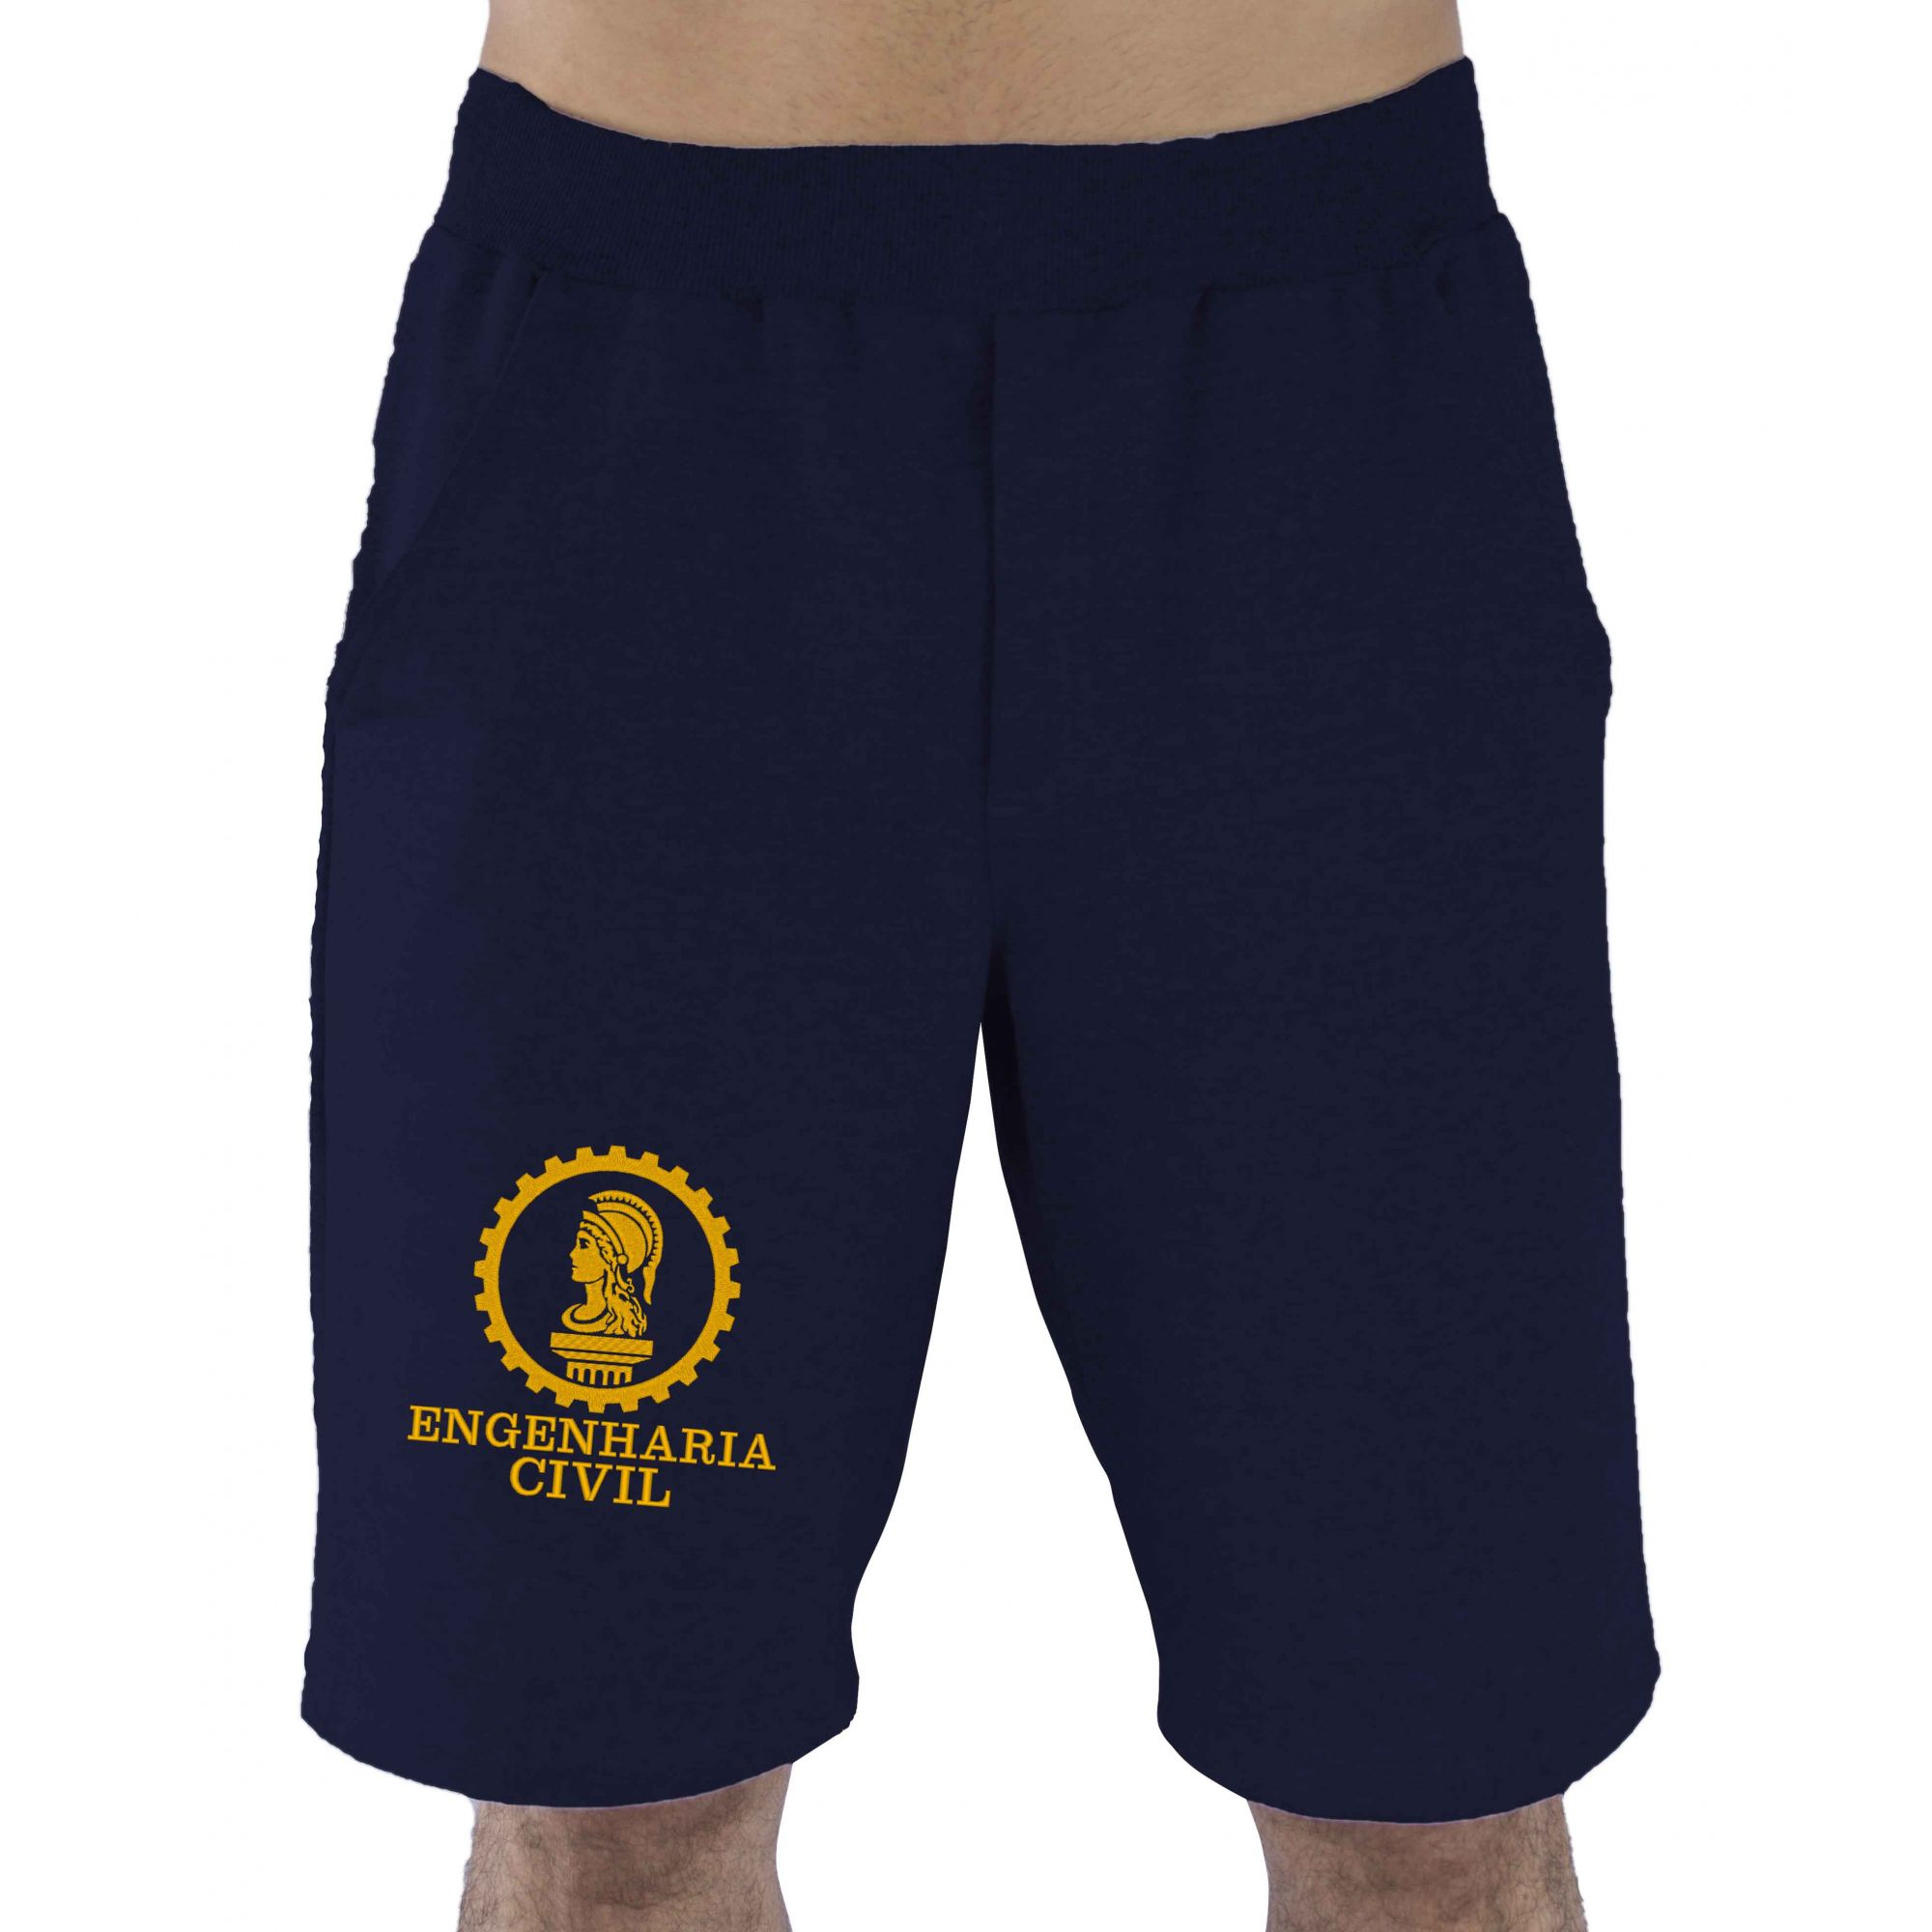 Short Engenharia Civil